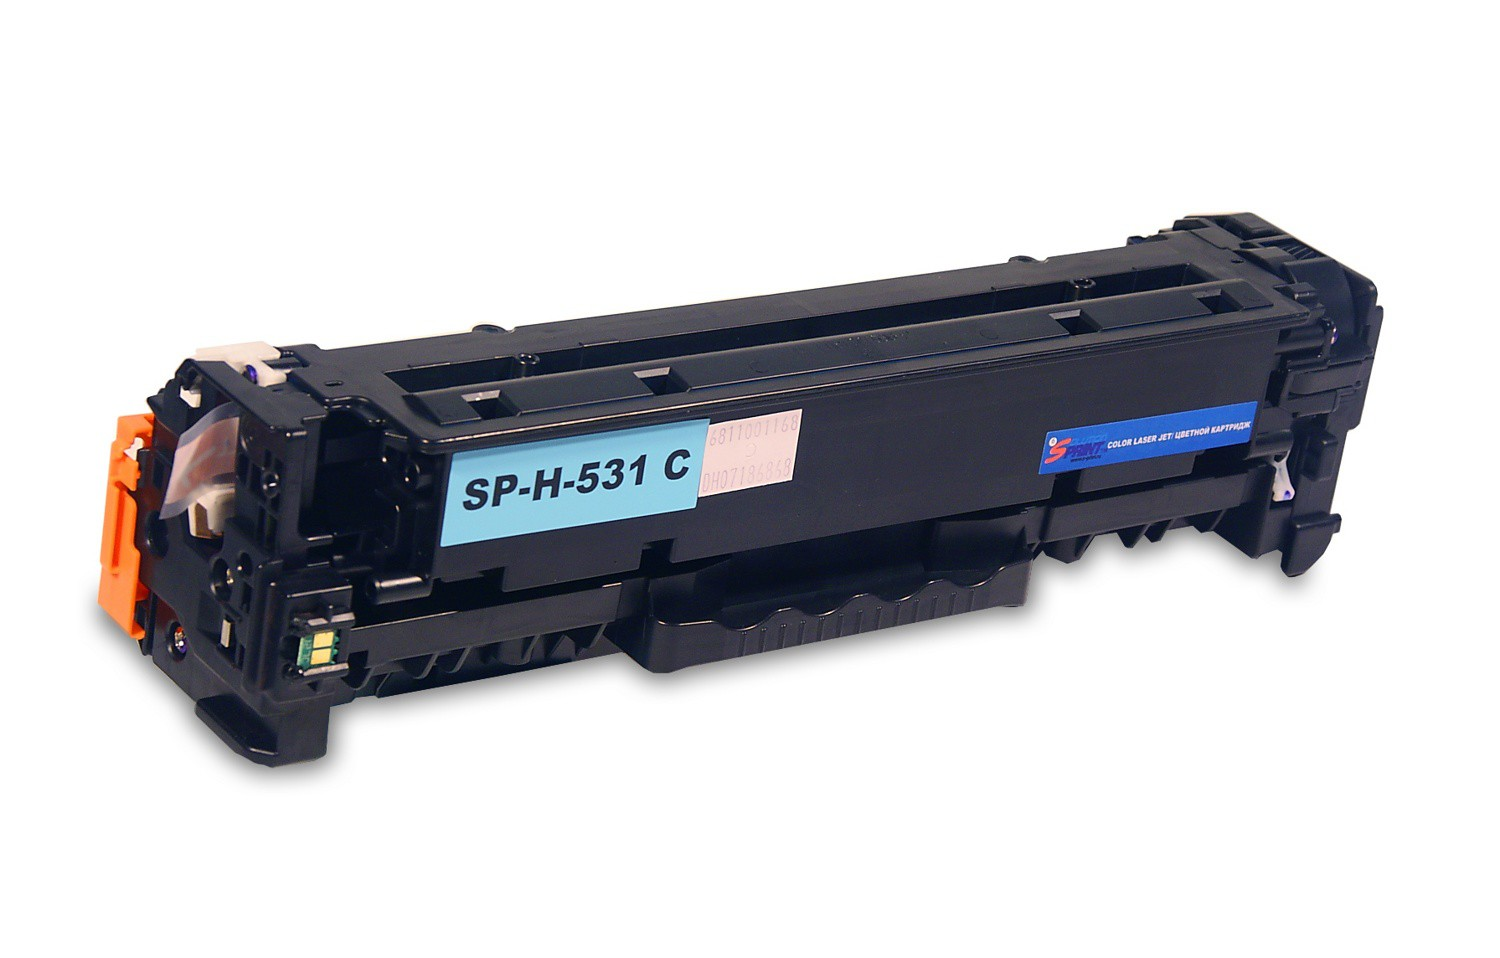 Картридж лазерный SolutionPrint SP-H-531 C (2800 коп.; HP Colour LaserJet CM2320 / CP2025)